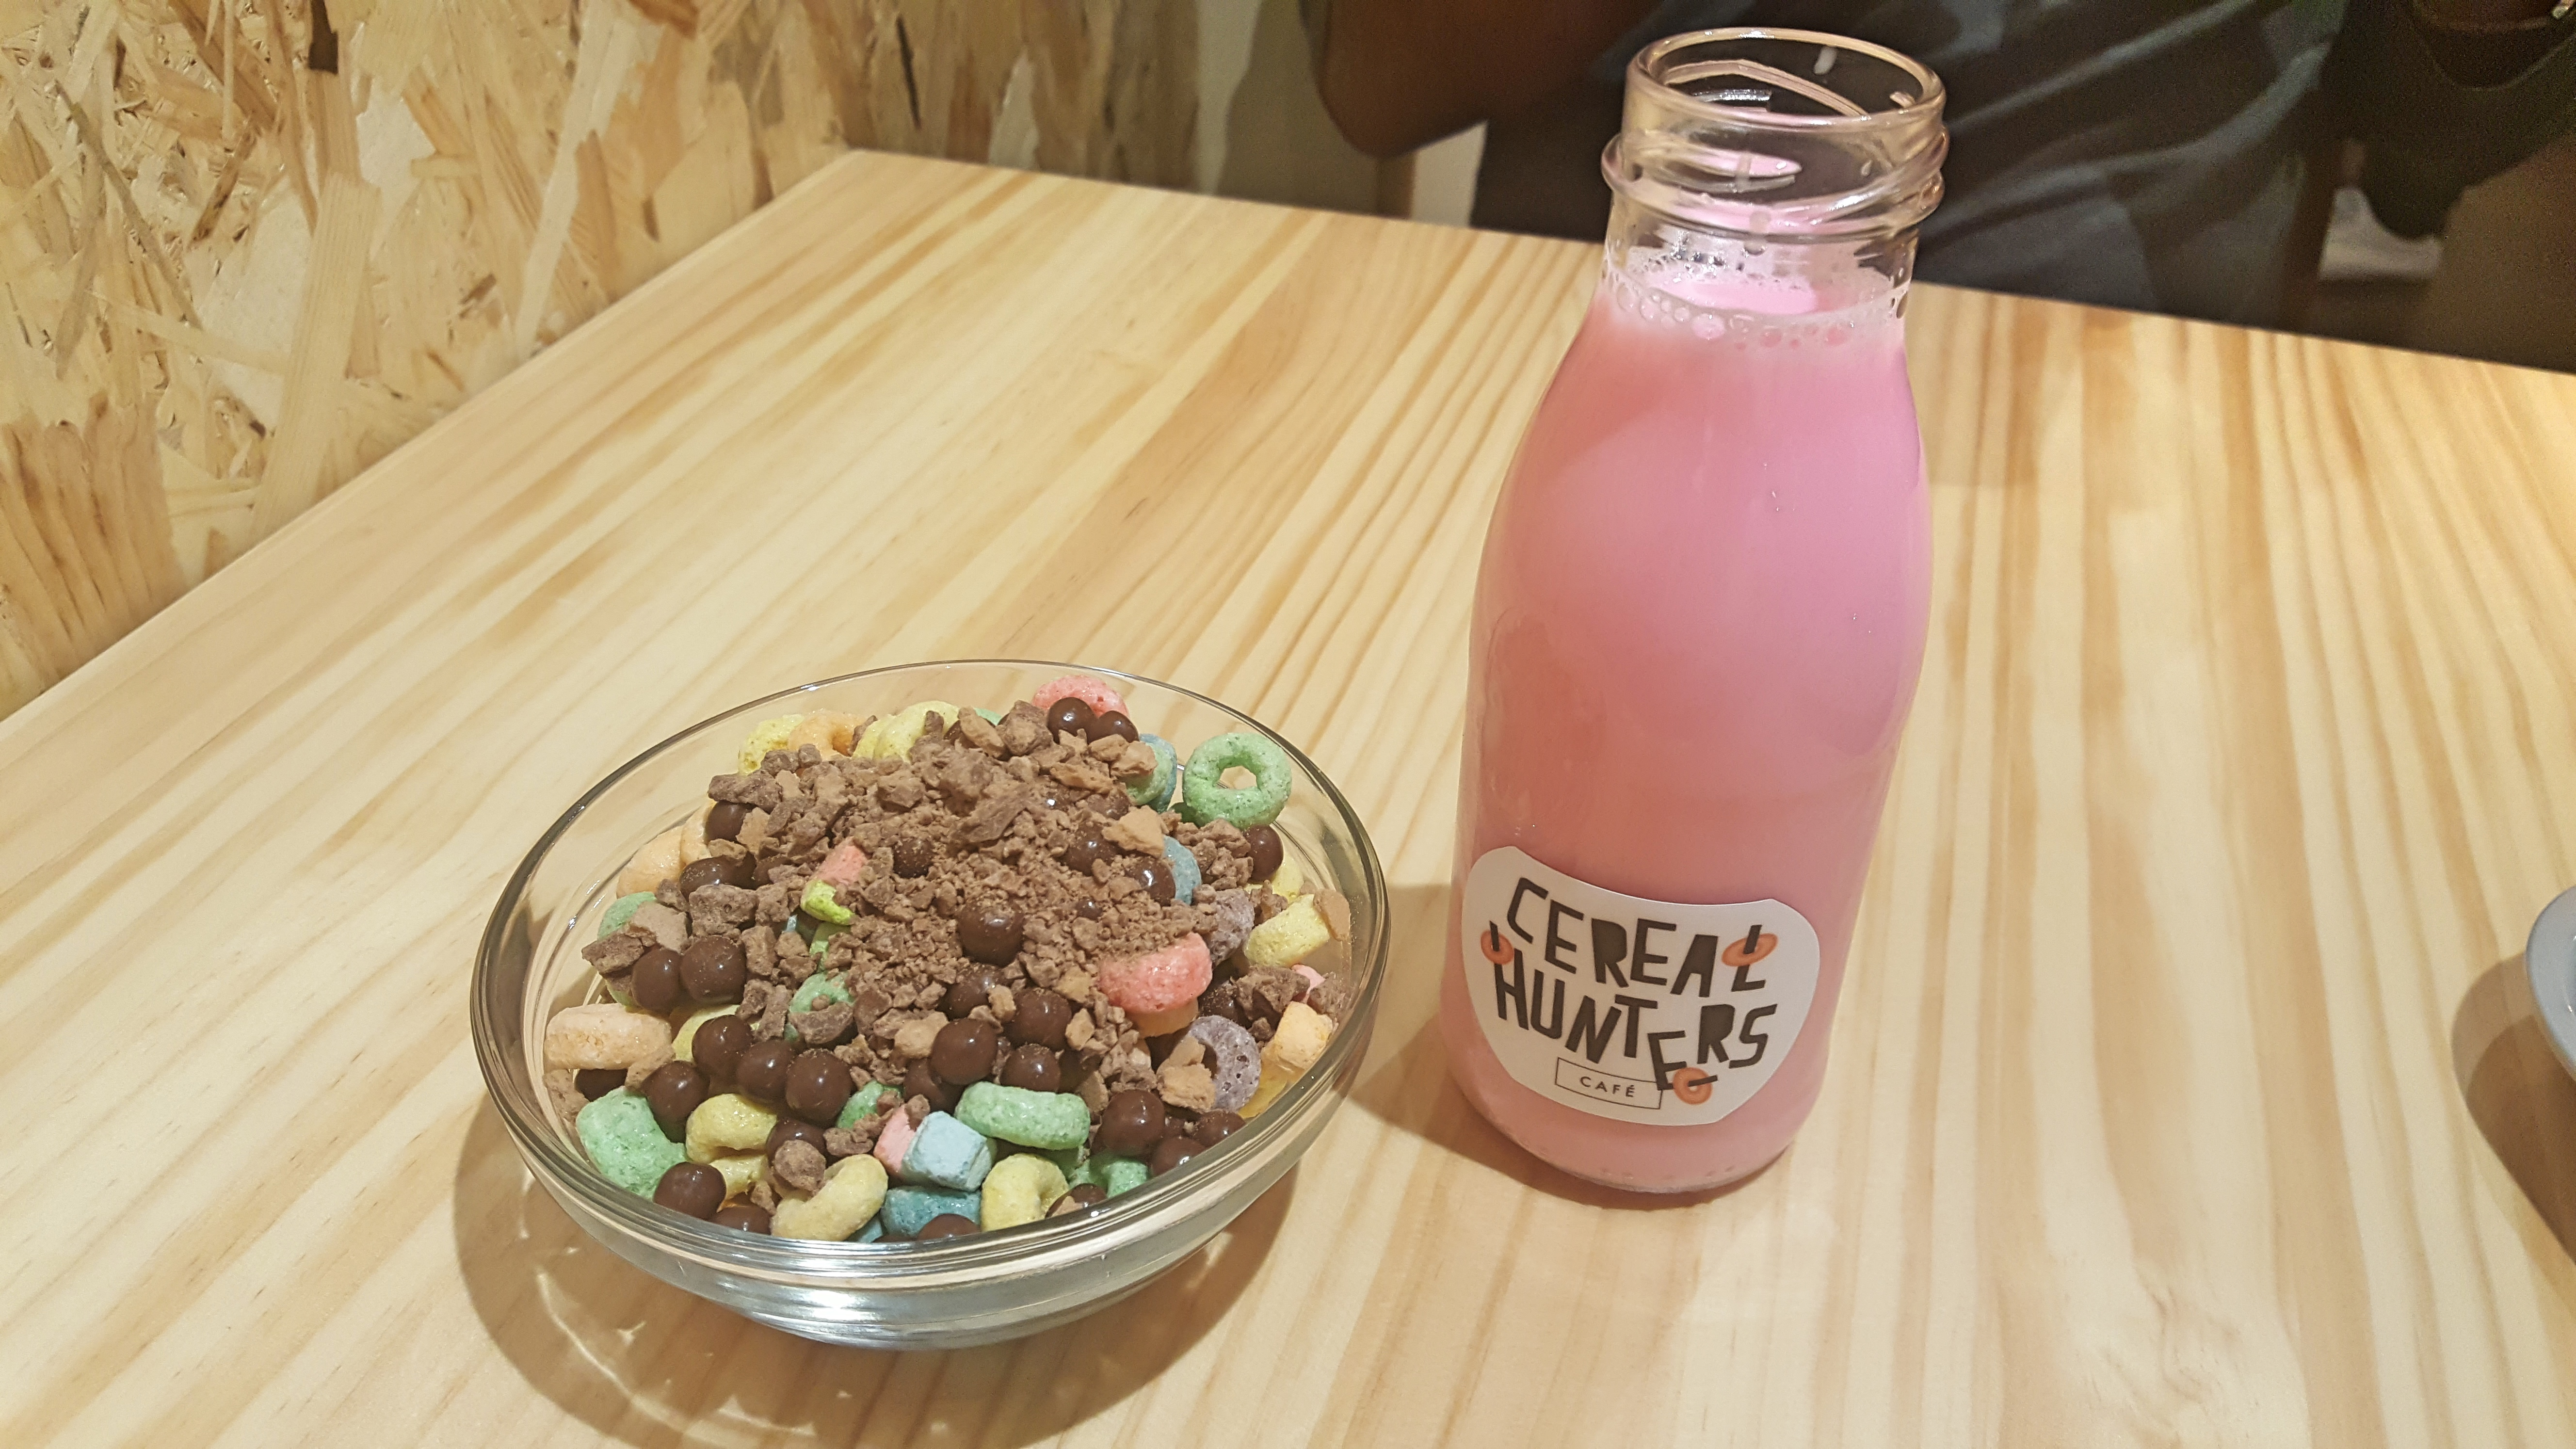 cereal-hunters-leche-rosa